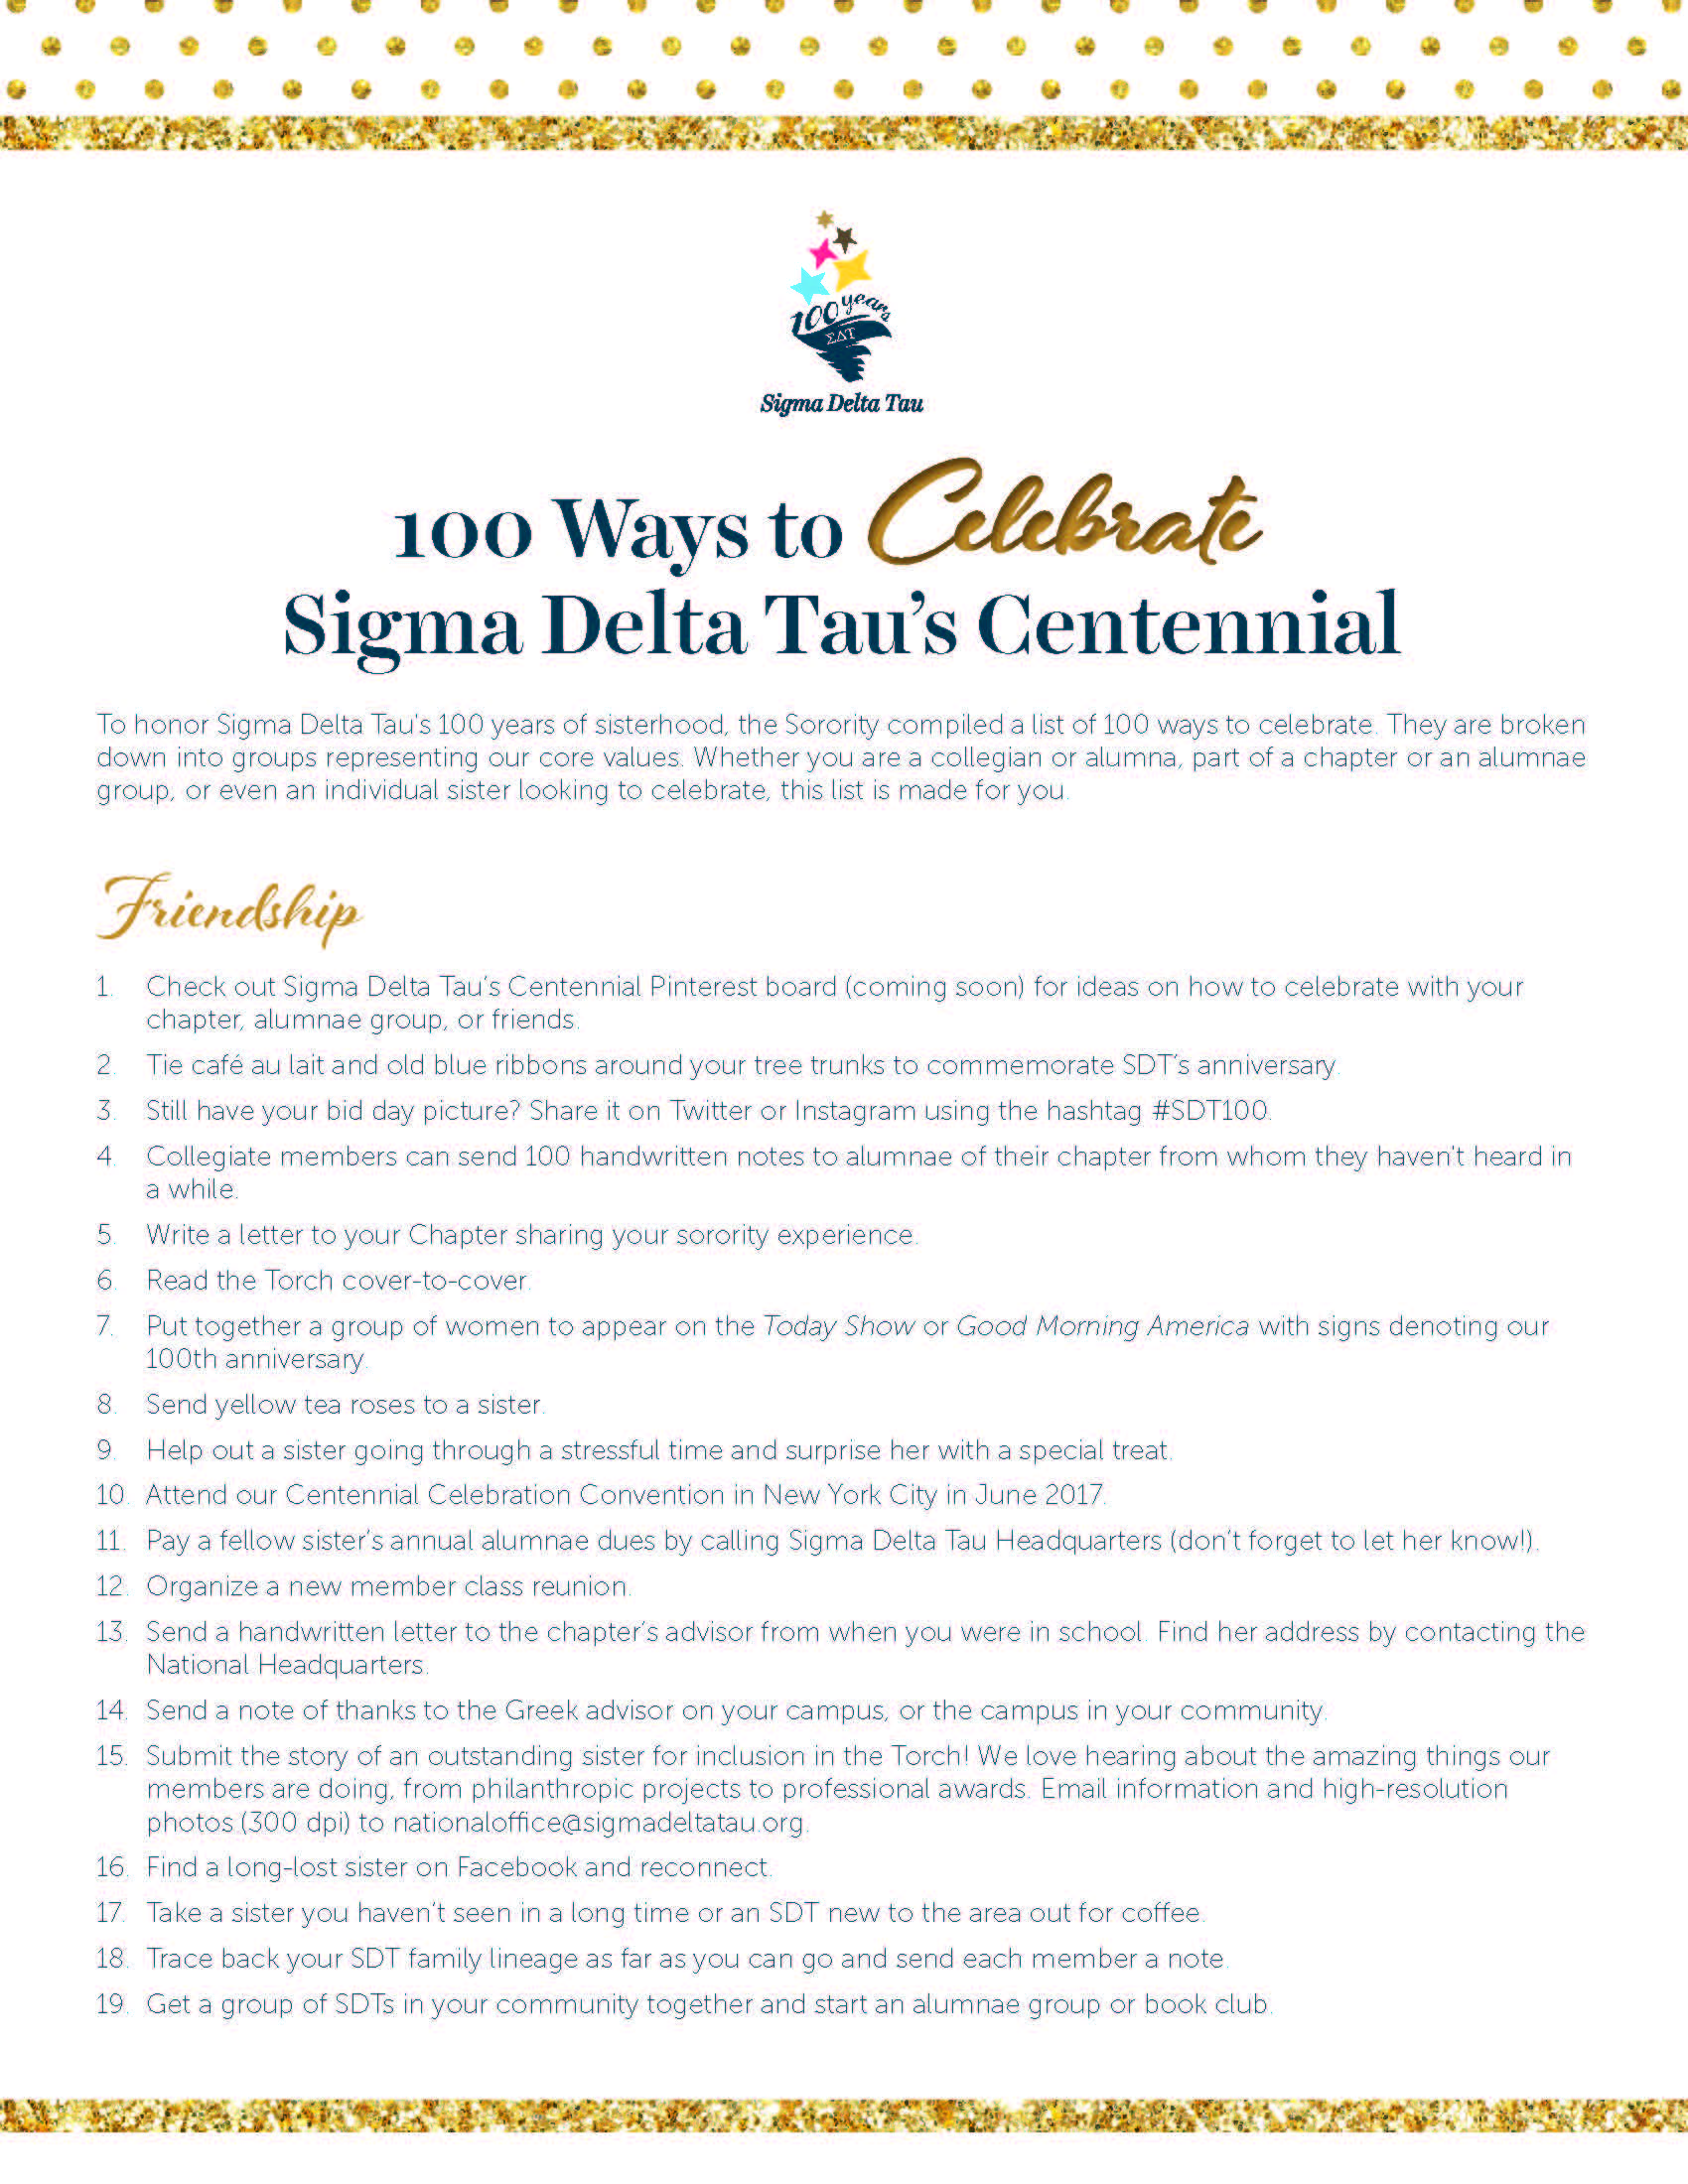 Get Started Now With The 100 Ways To How To Fill Out A Deposit Slip Carousel